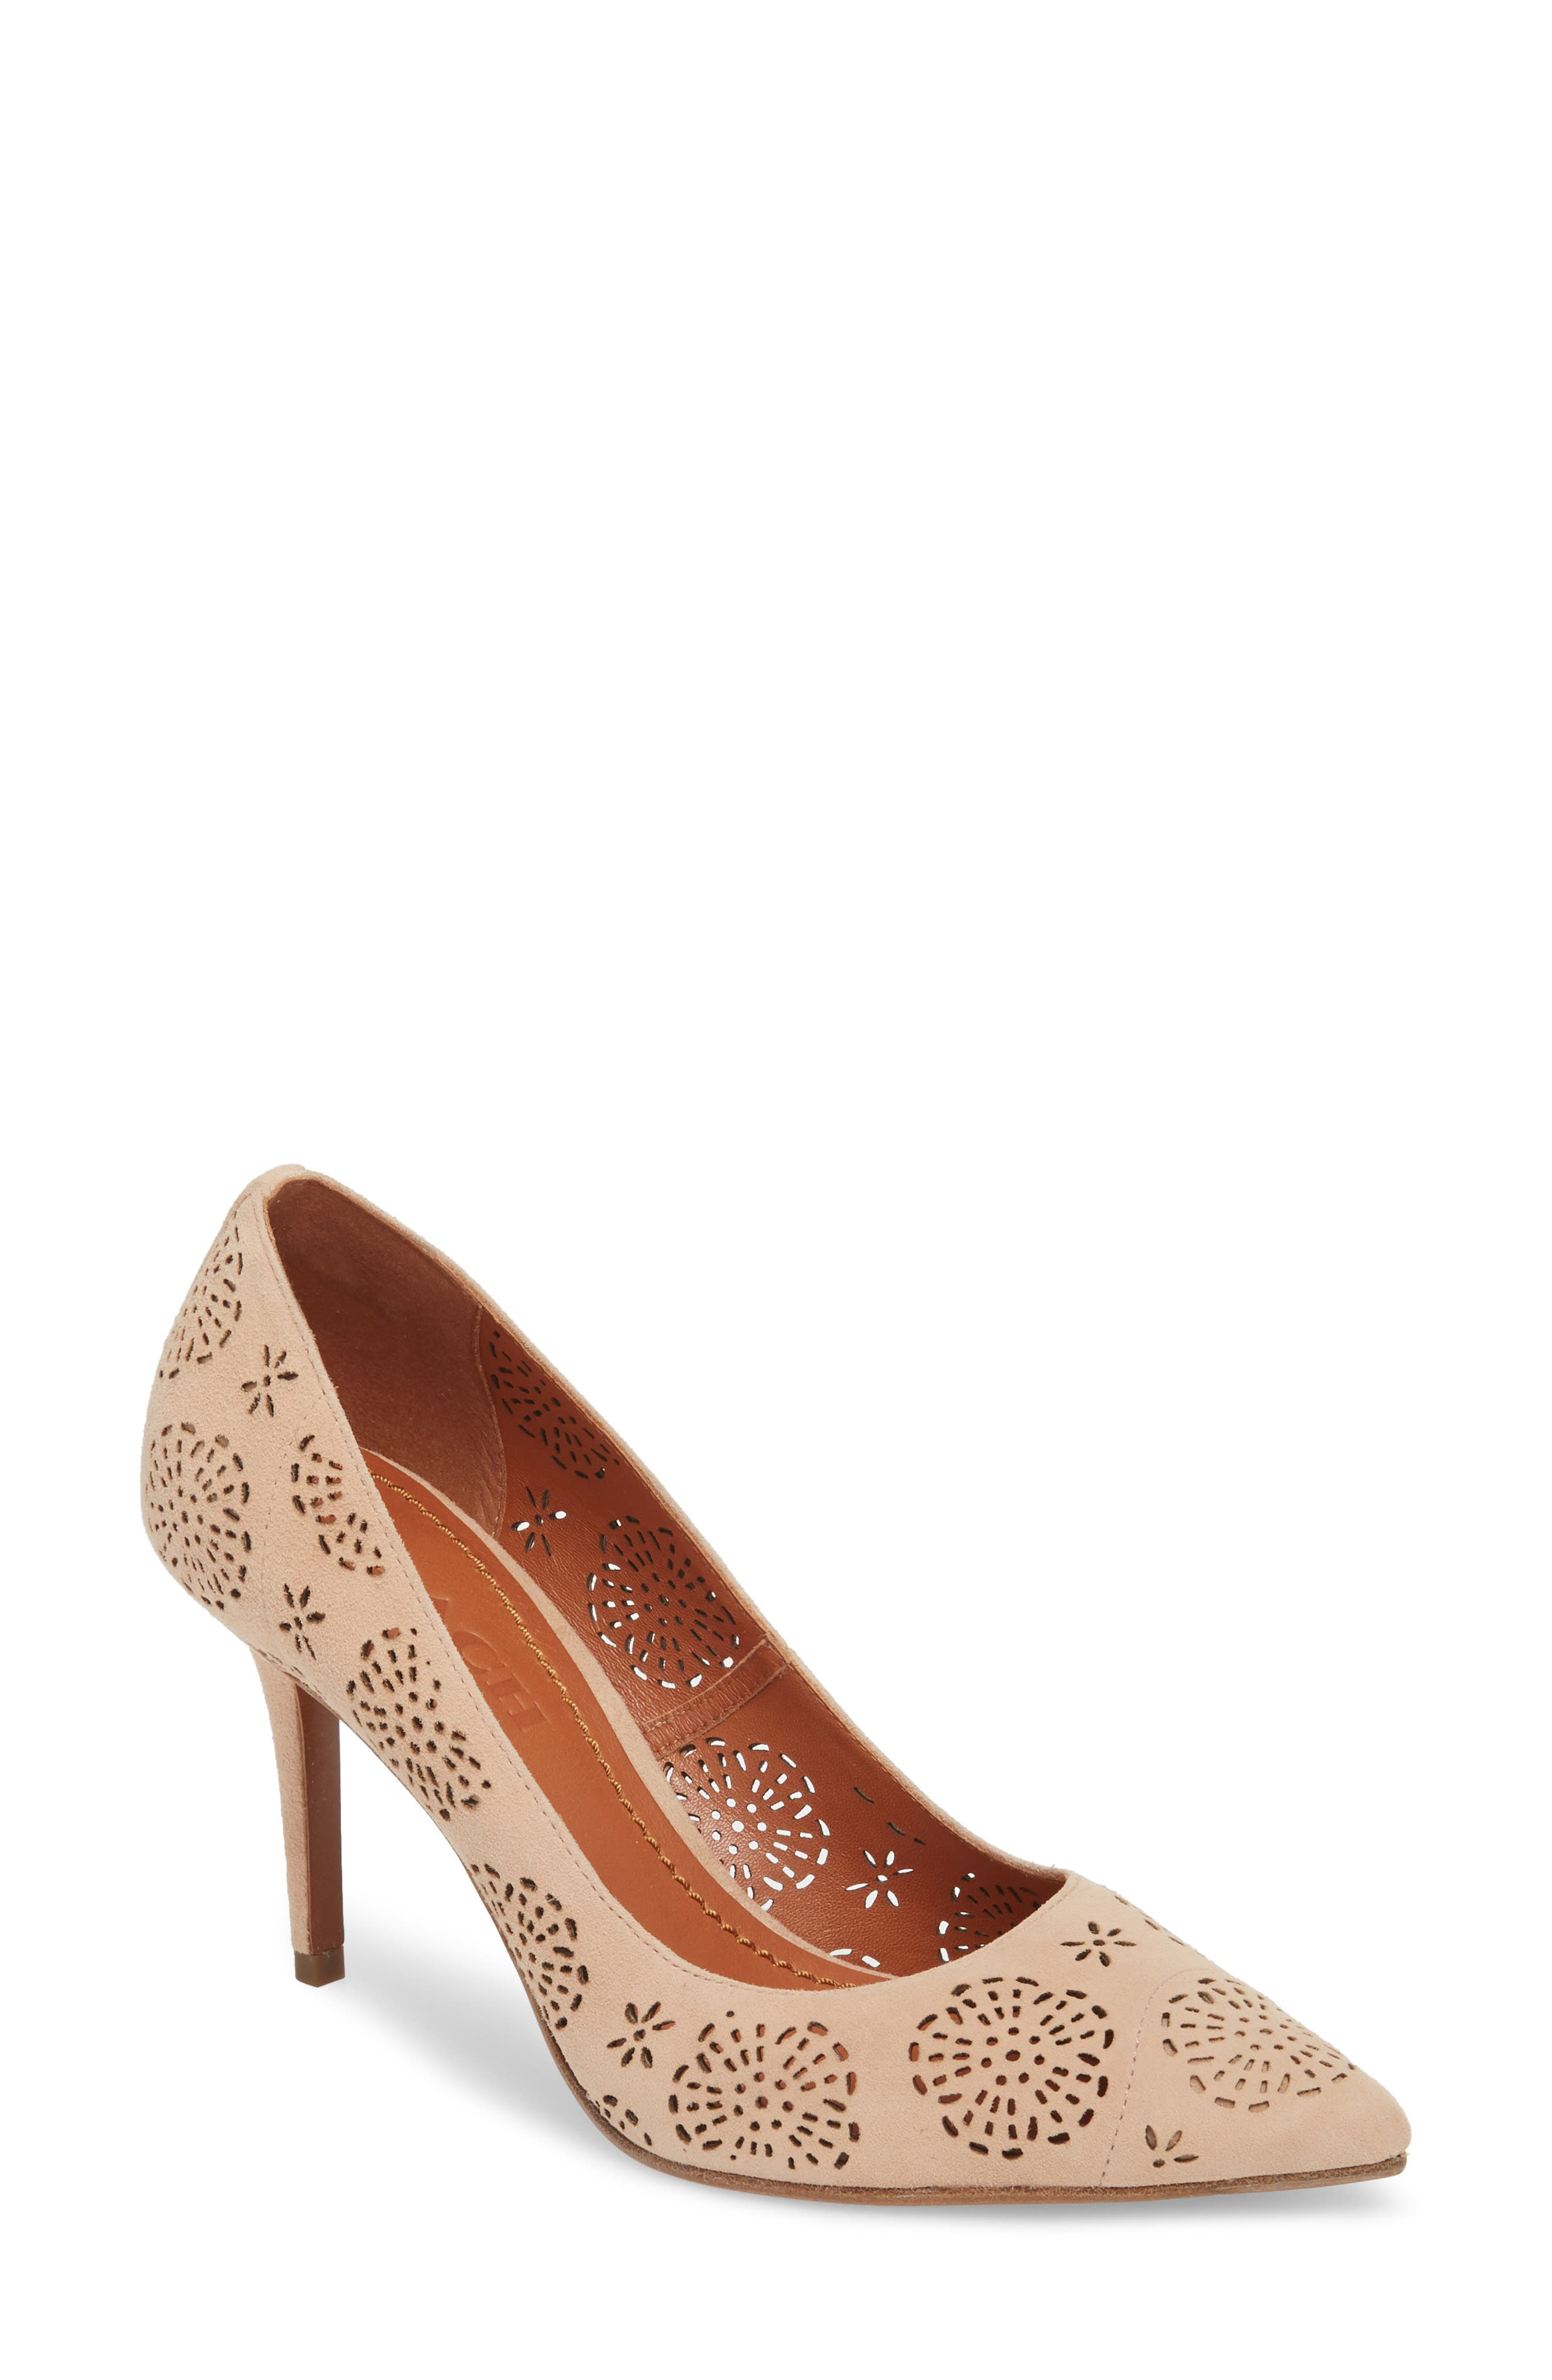 Waverly Tea Rose Perforated Pump,                             Main thumbnail 1, color,                             Beachwood Leather